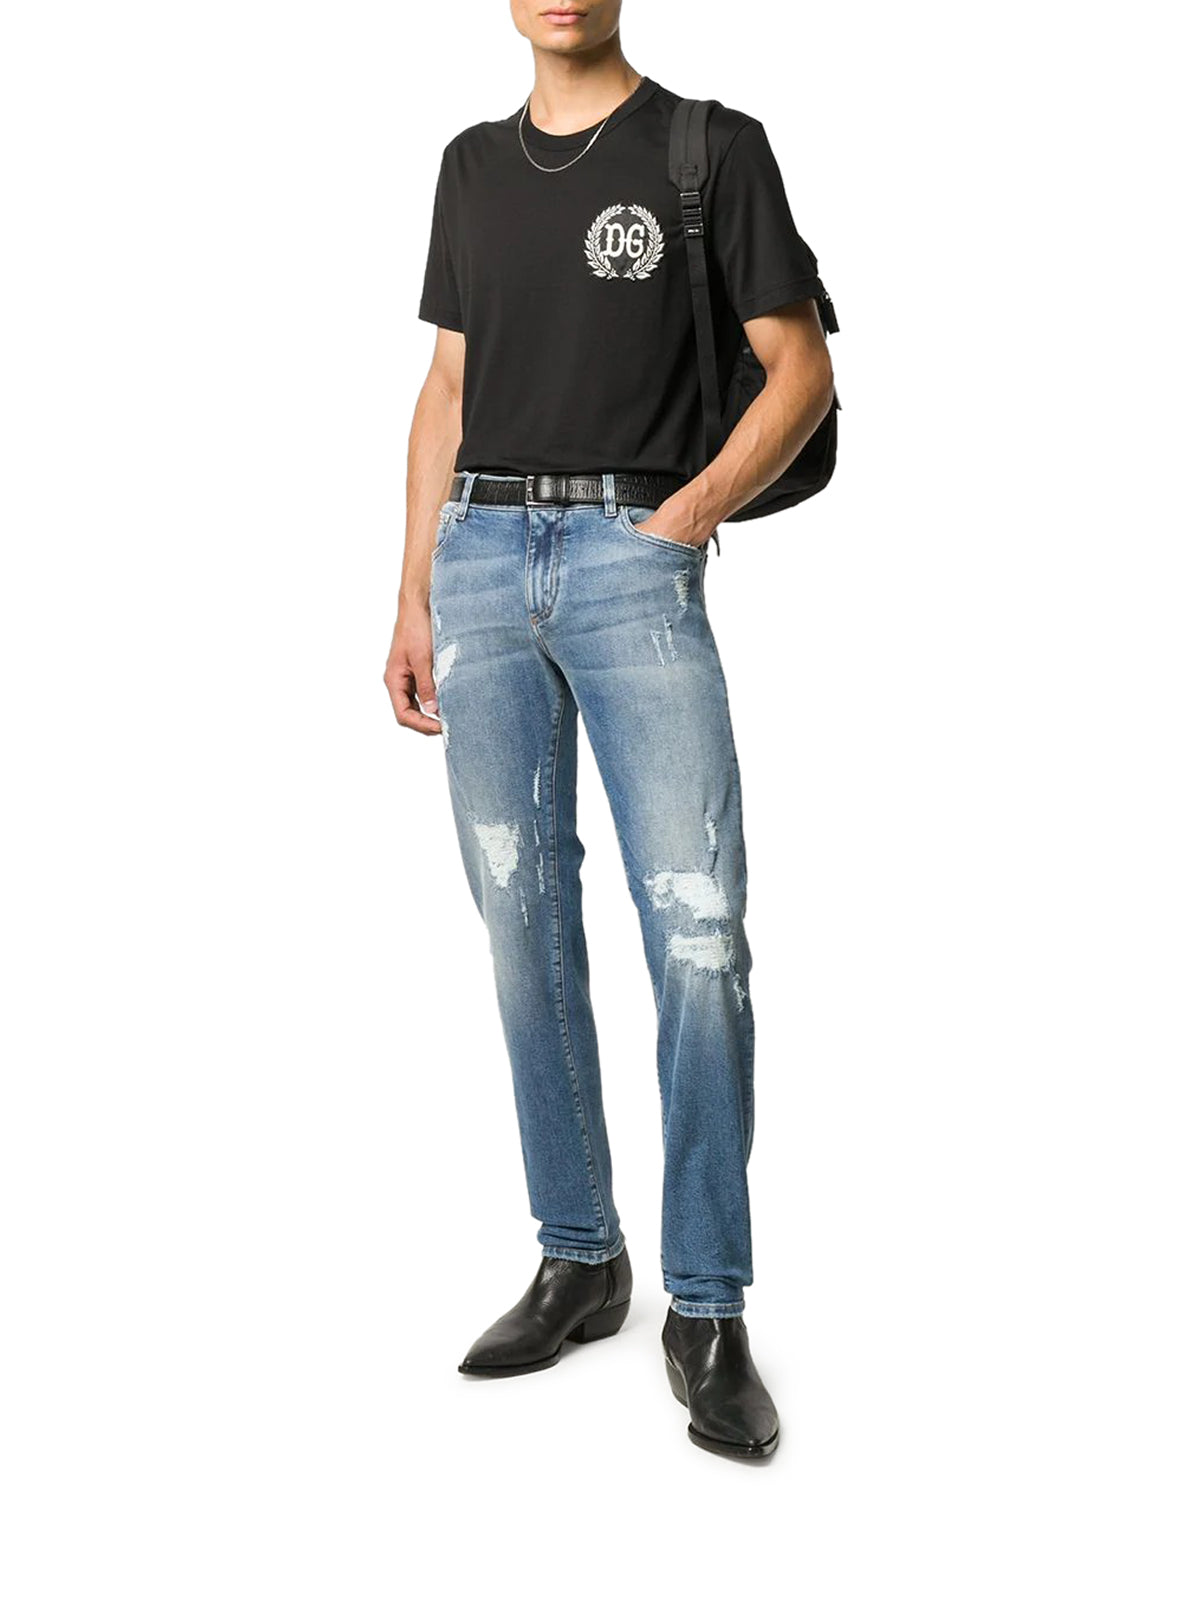 DG patch cotton T-shirt